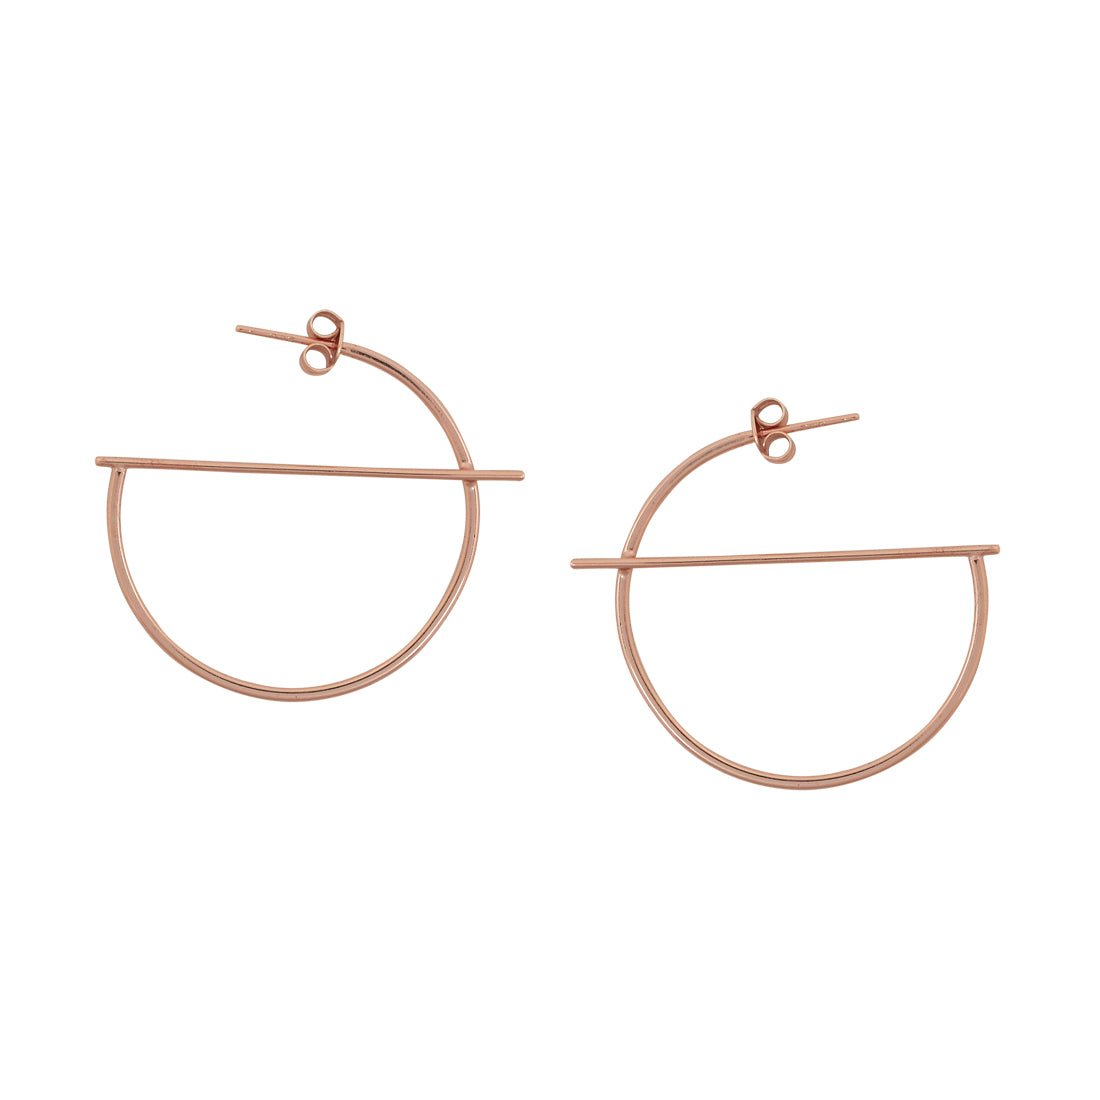 G-Shape Hoop with Post Earring